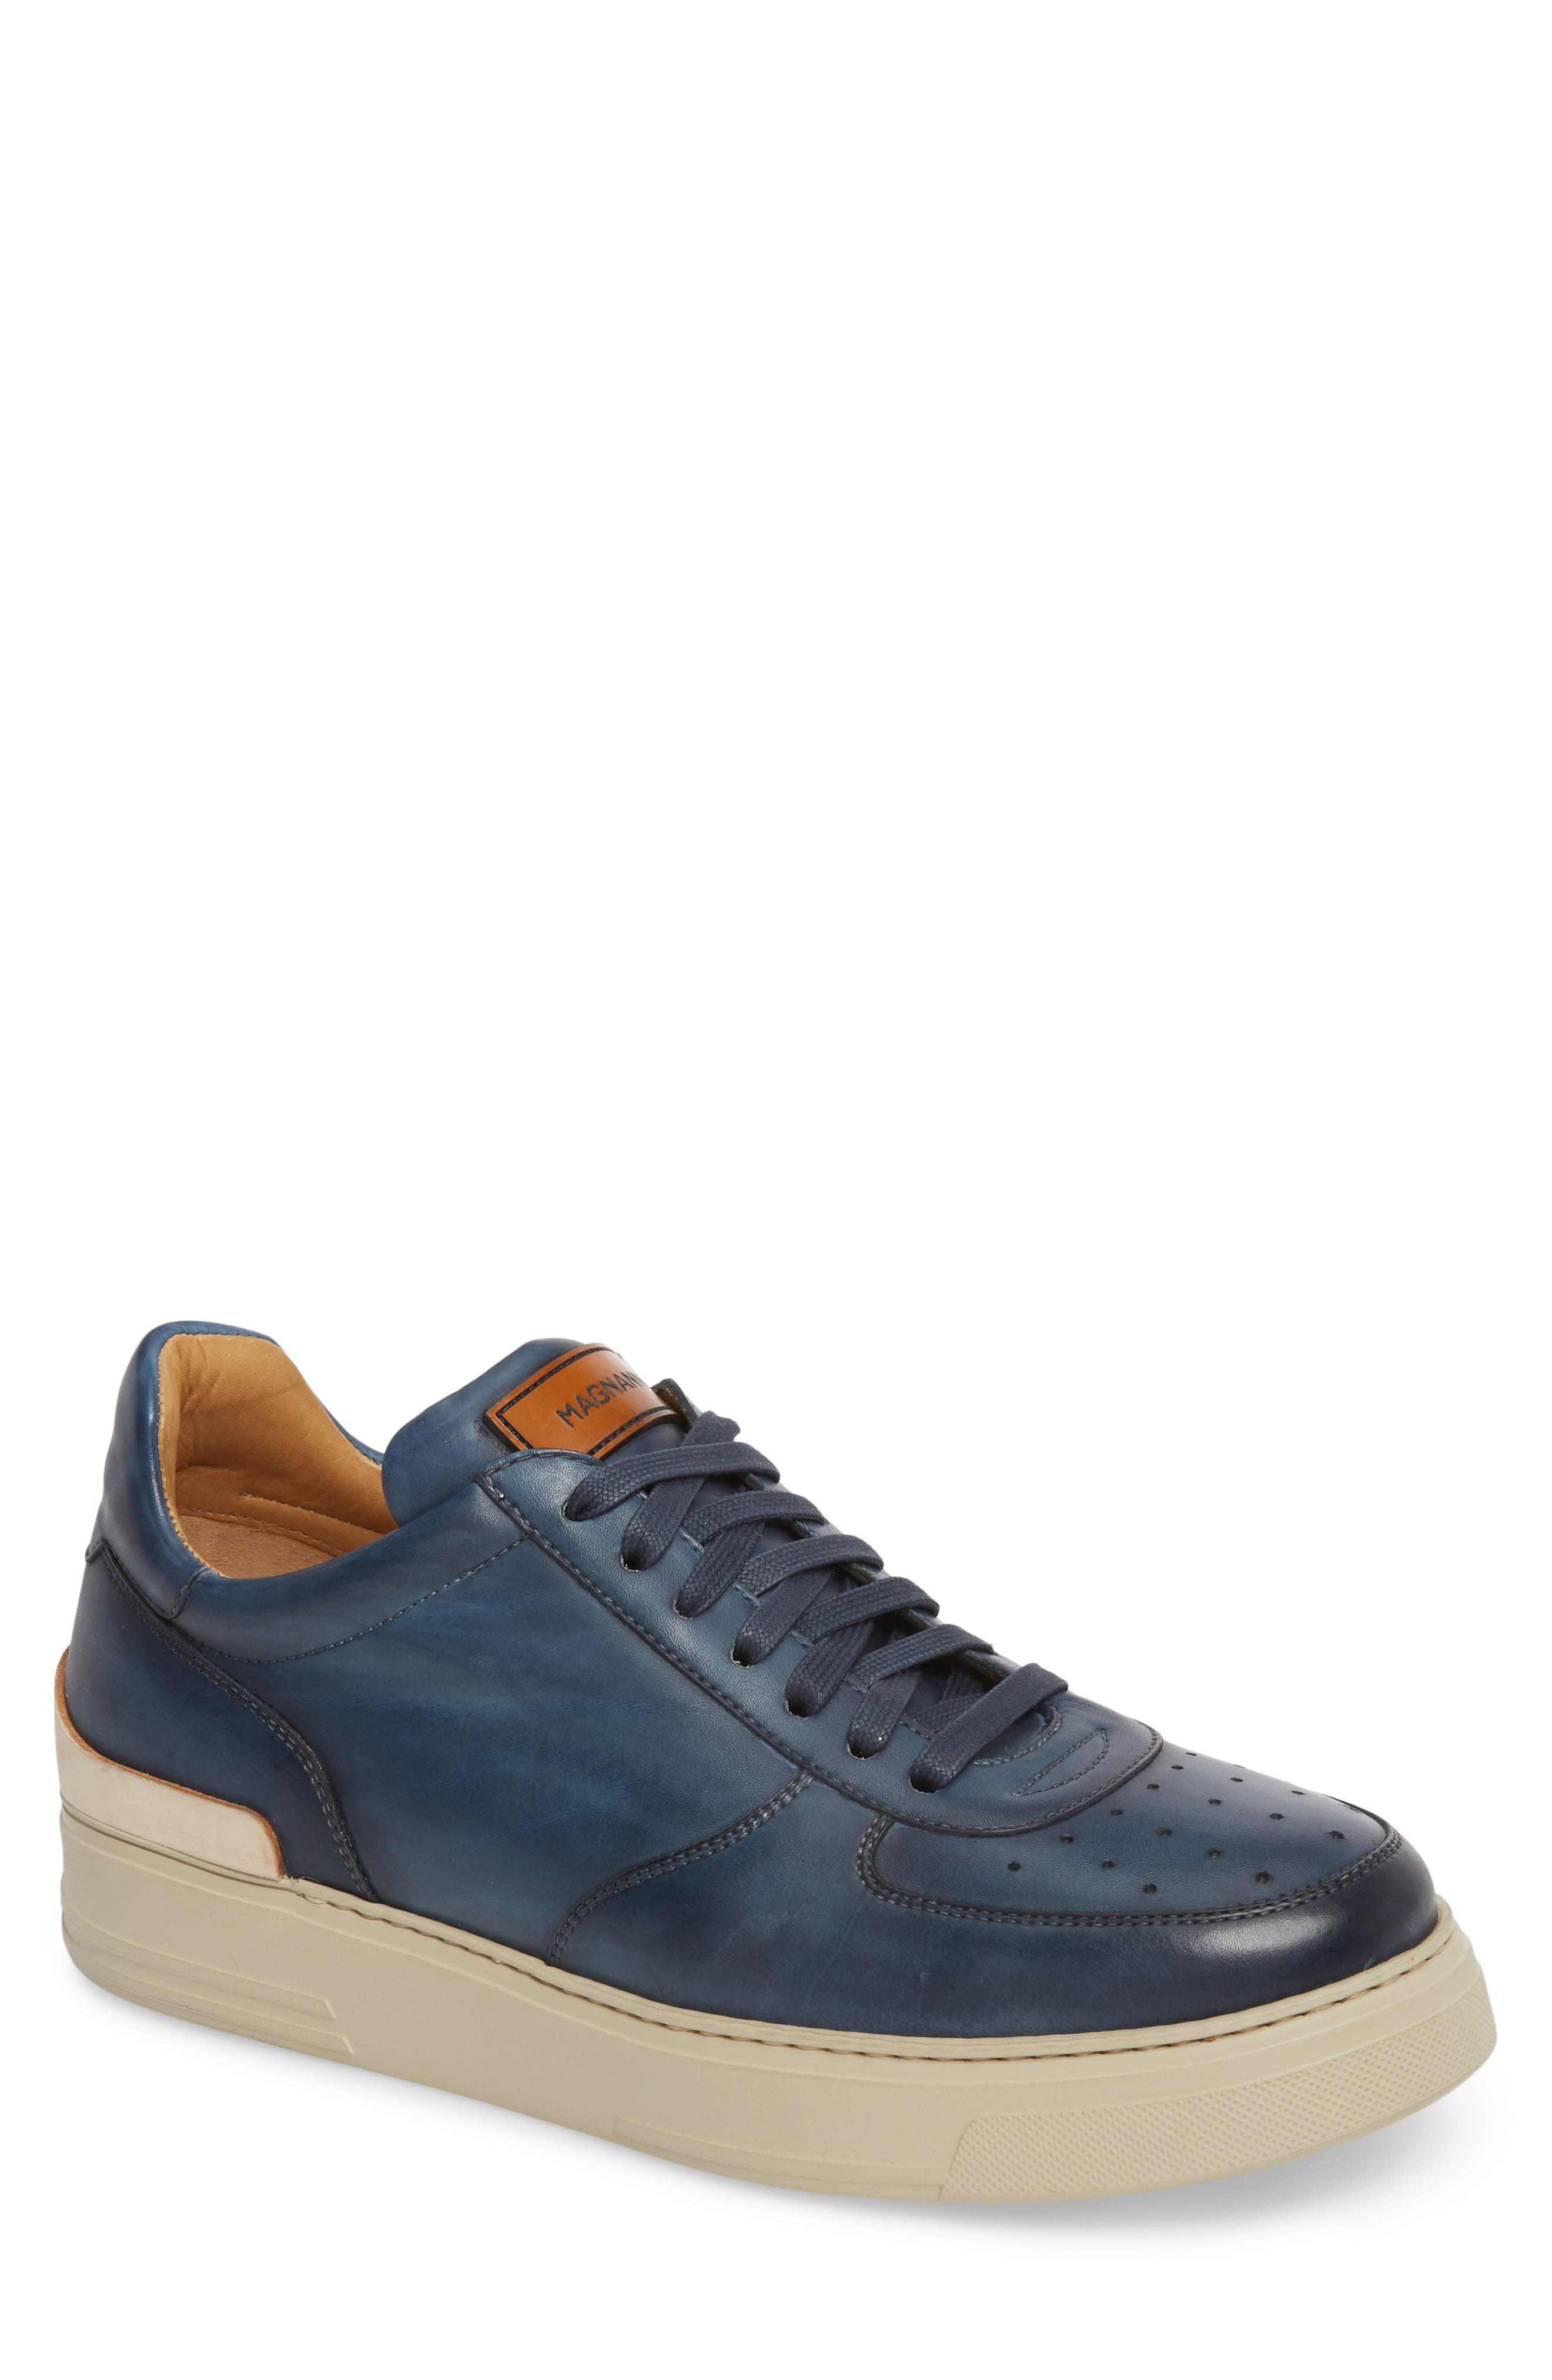 Vada Lo Lace Up Sneaker,                         Main,                         color, Blue Leather